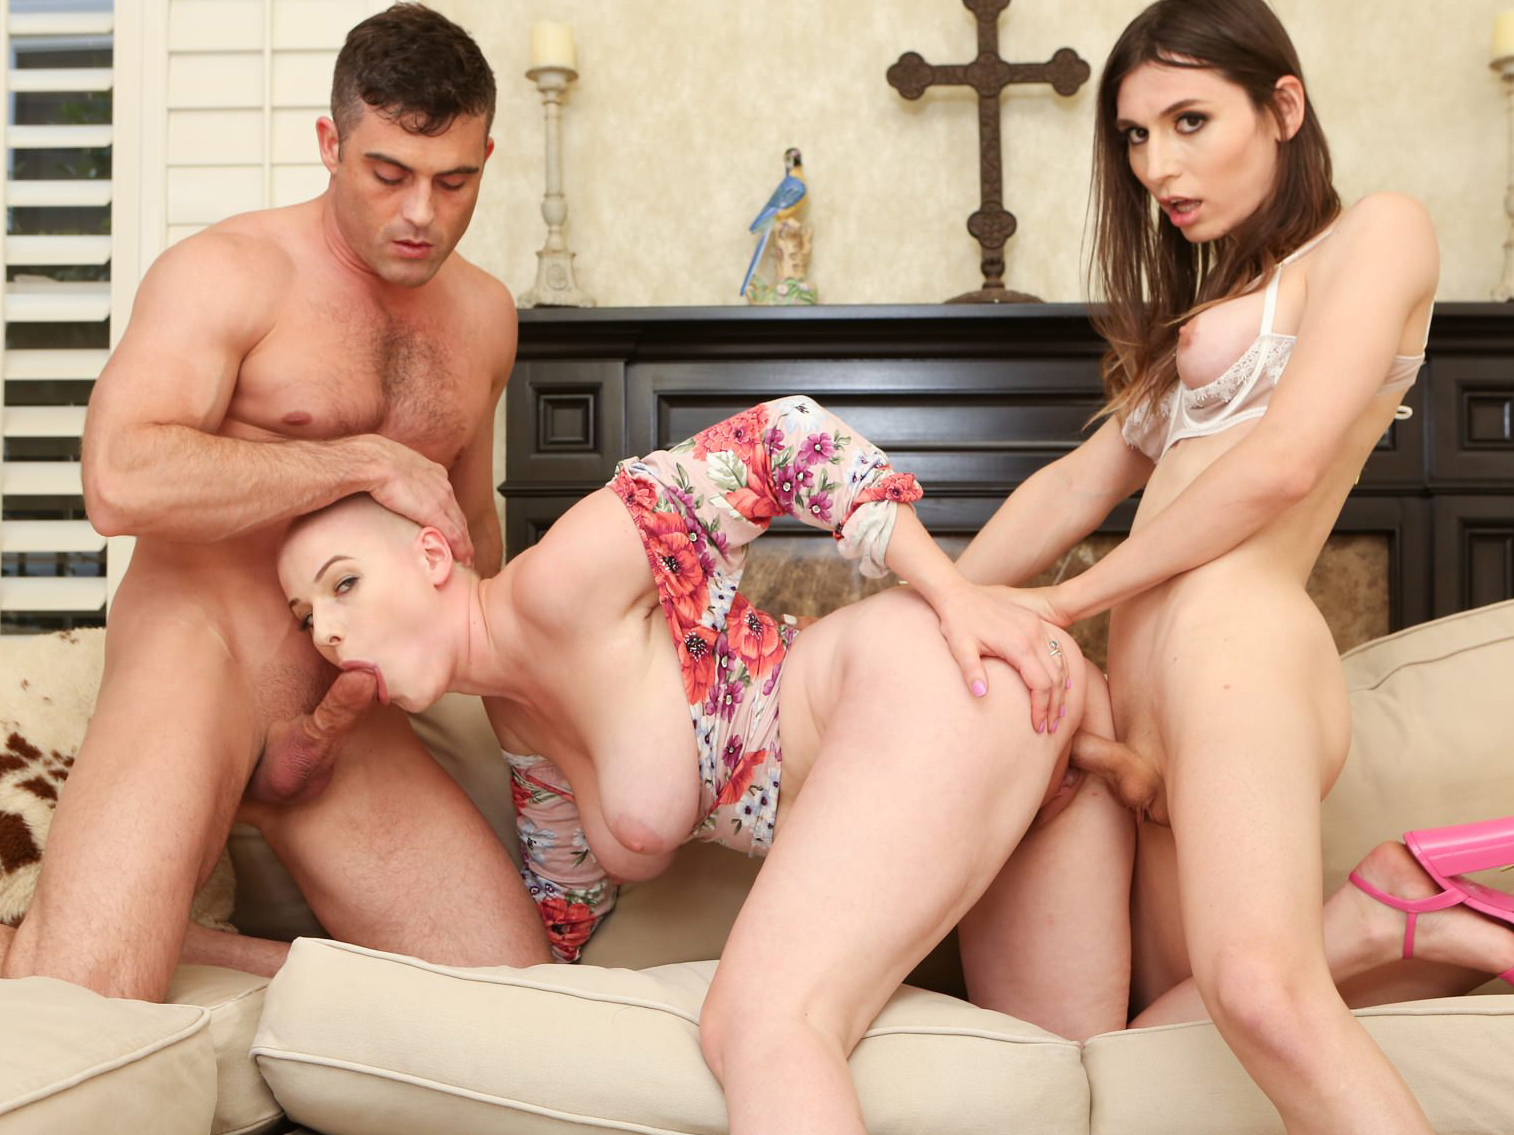 A shy friend gets sauced up and shows your wife his thing